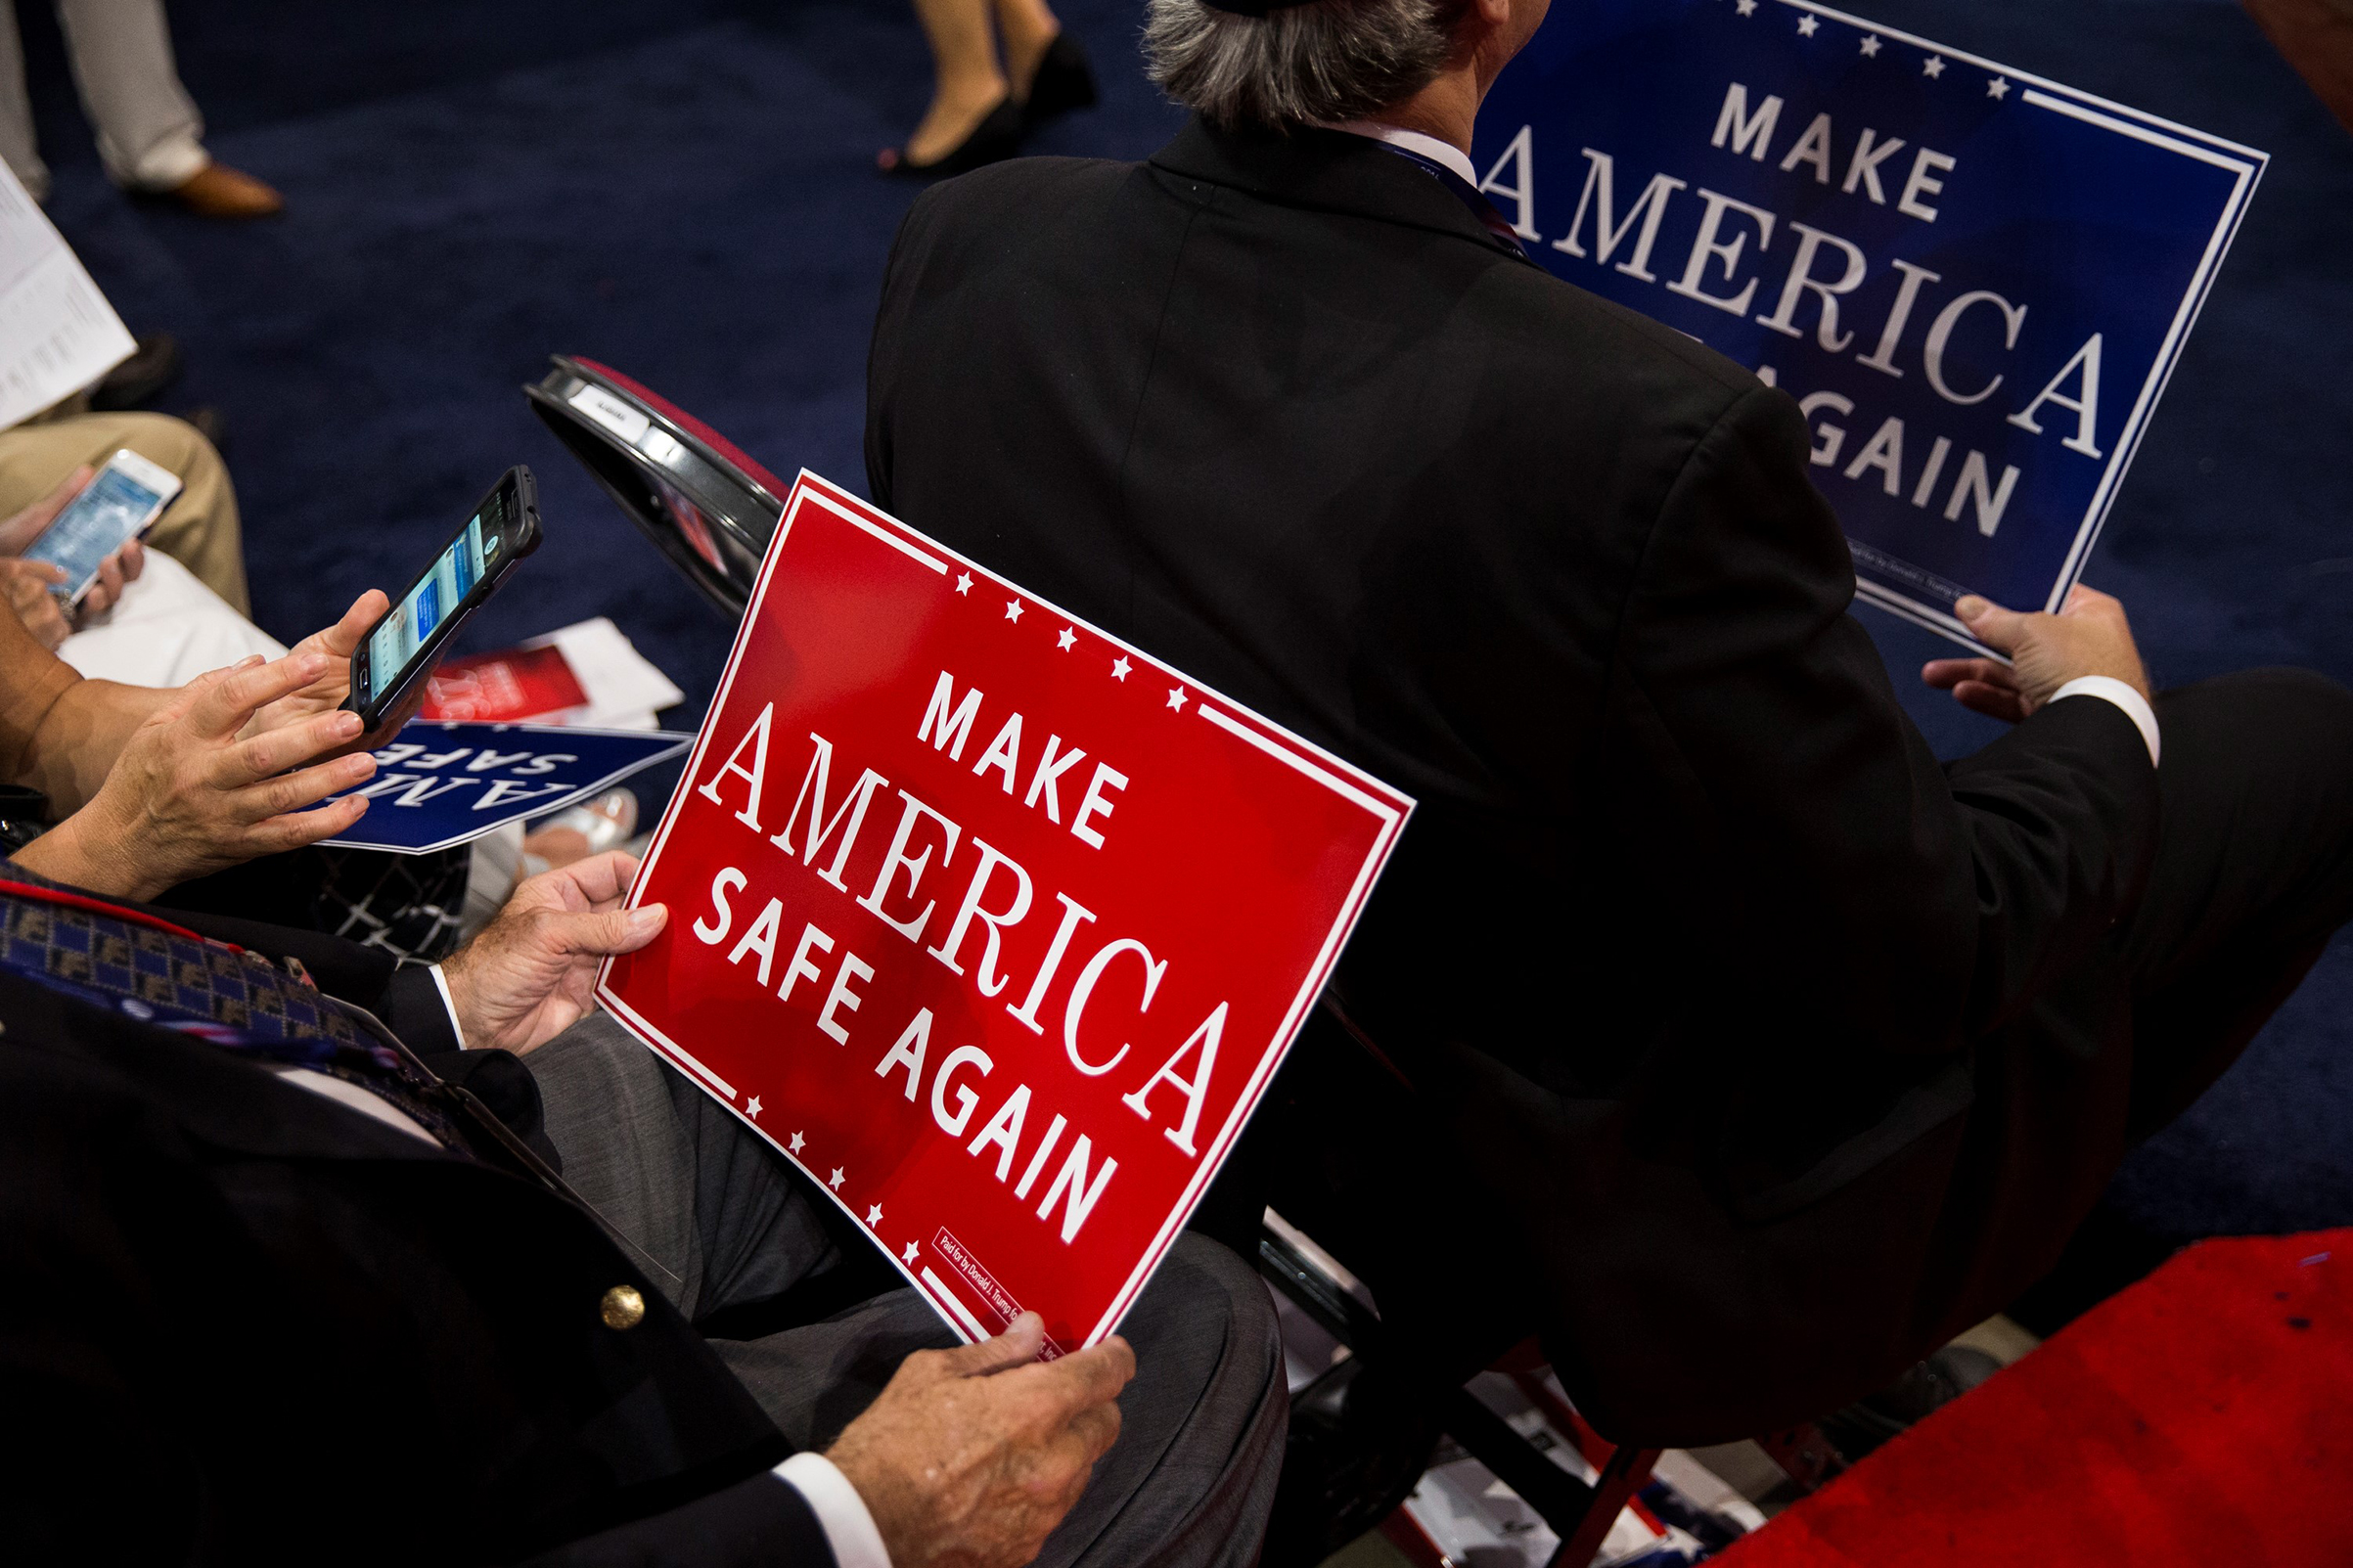 Delegates hold signs that say  Make America Safe Again , the new GOP slogan, during the 2016 Republican National Convention in Cleveland, Ohio, on July 18, 2016.